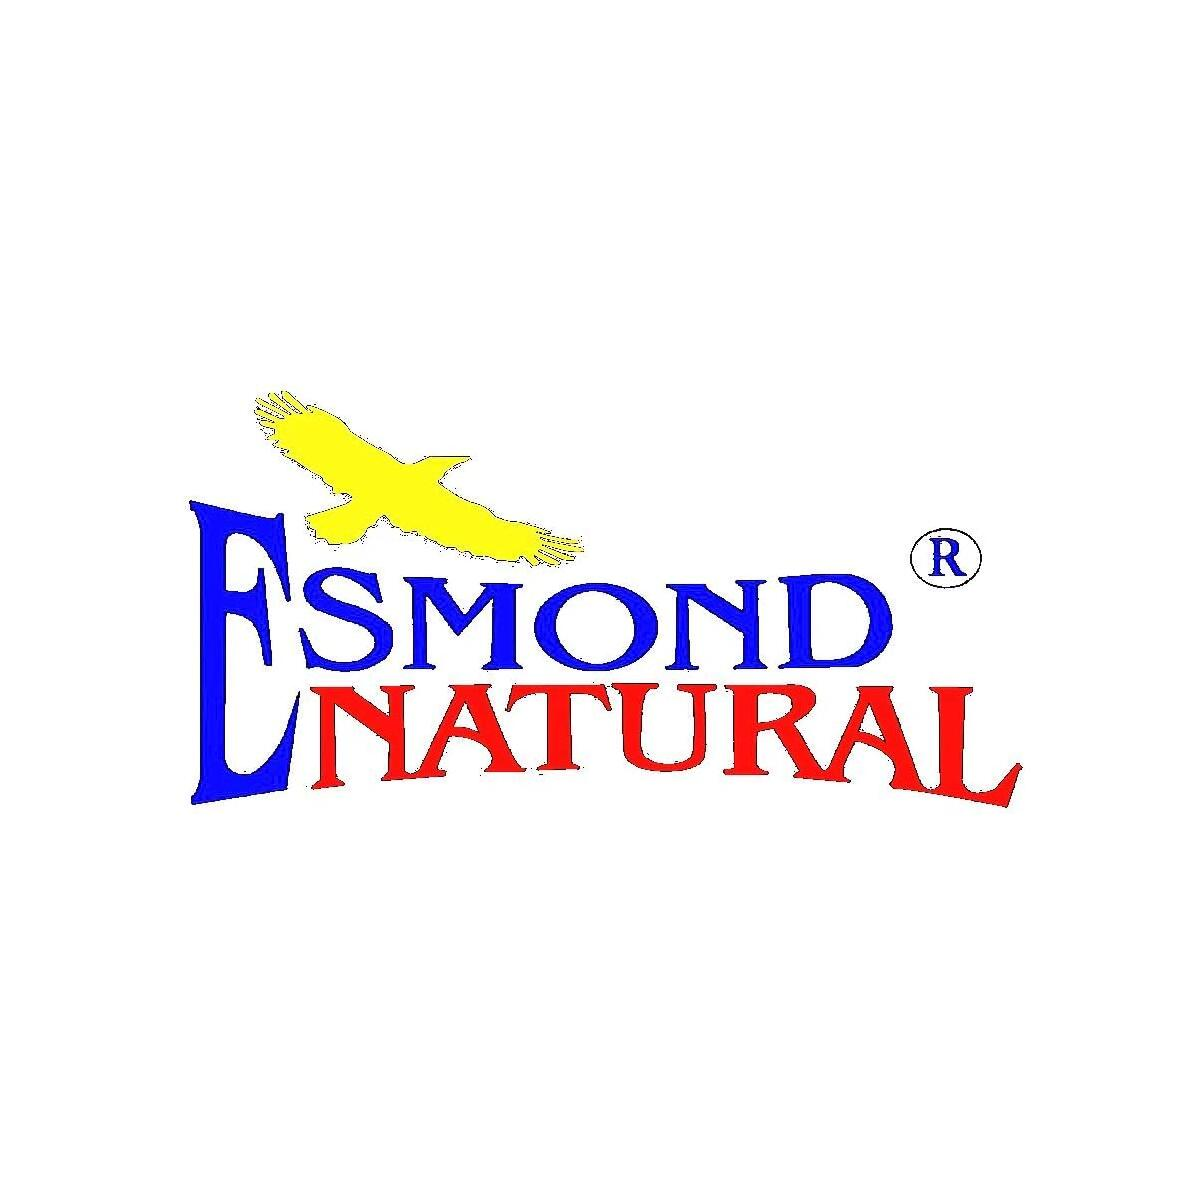 (5 Count, 25% Off) Esmond Natural: Children's Chewable Multivitamins with Vitamin C (Former Kiwi Fruit Complex), GMP, Natural Product Assn Certified, Made in USA-300 Tablets